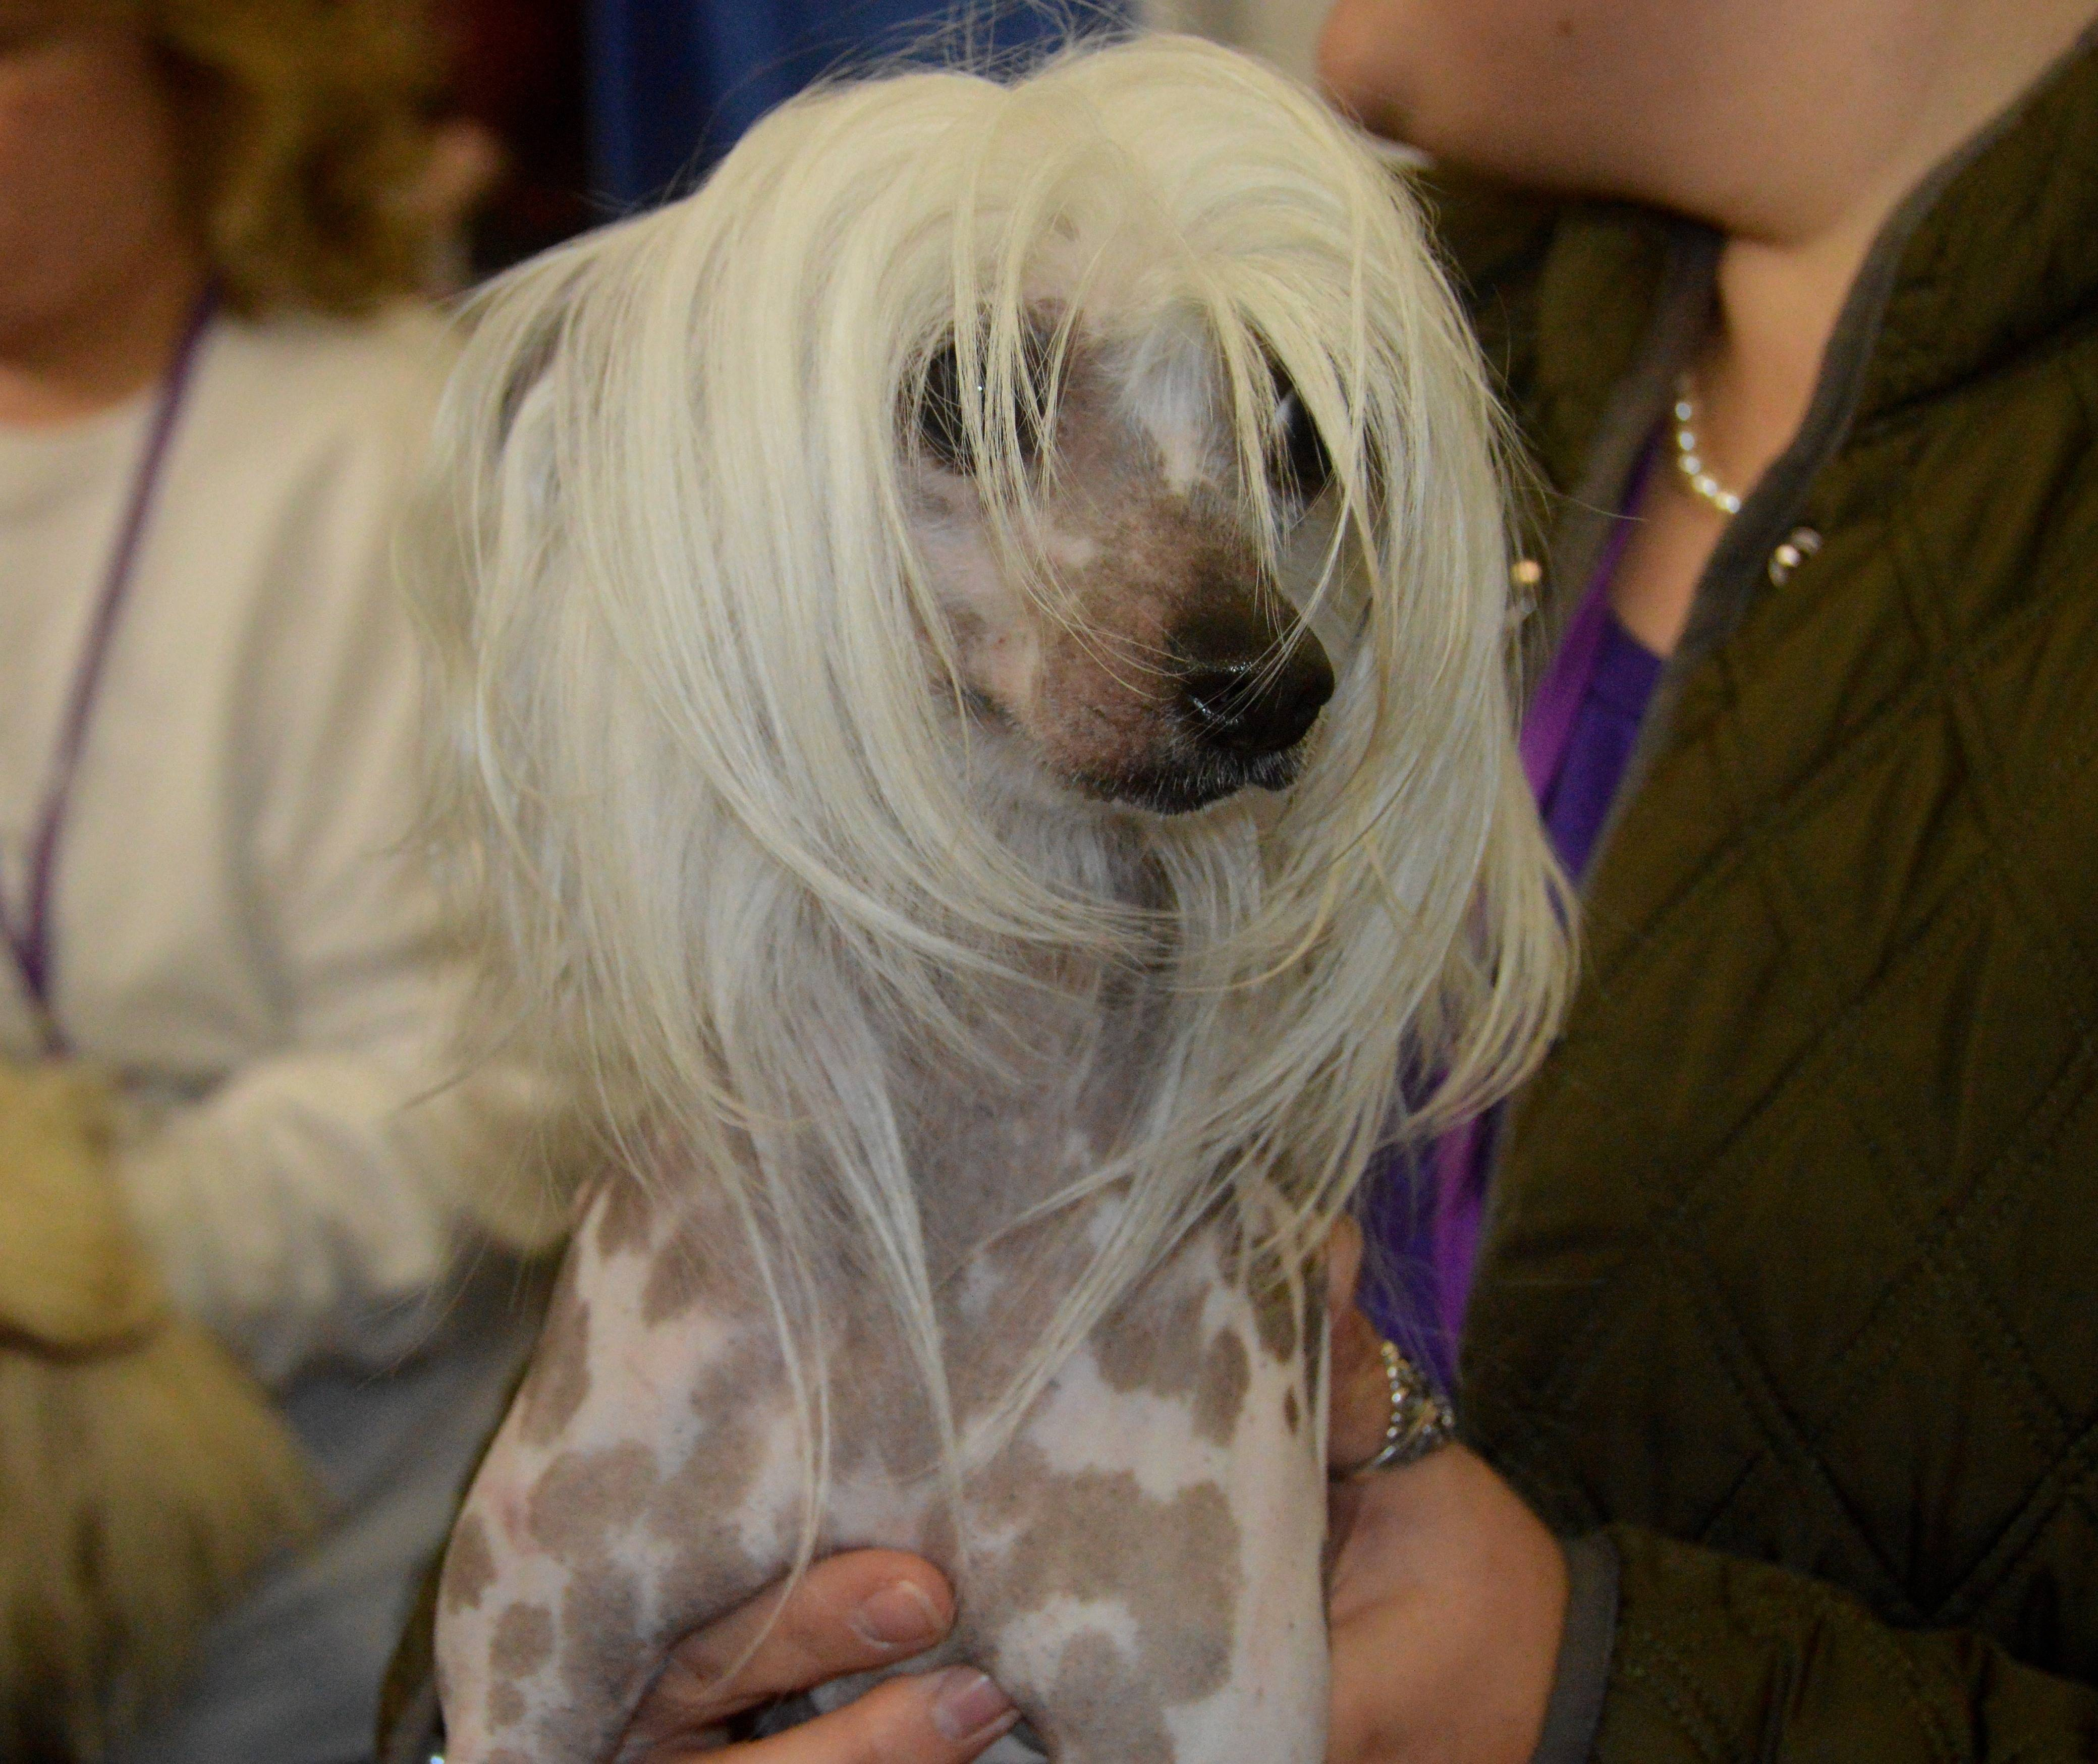 ecd1a4680f32fd6d6452_WD-_Chinese_Crested.JPG